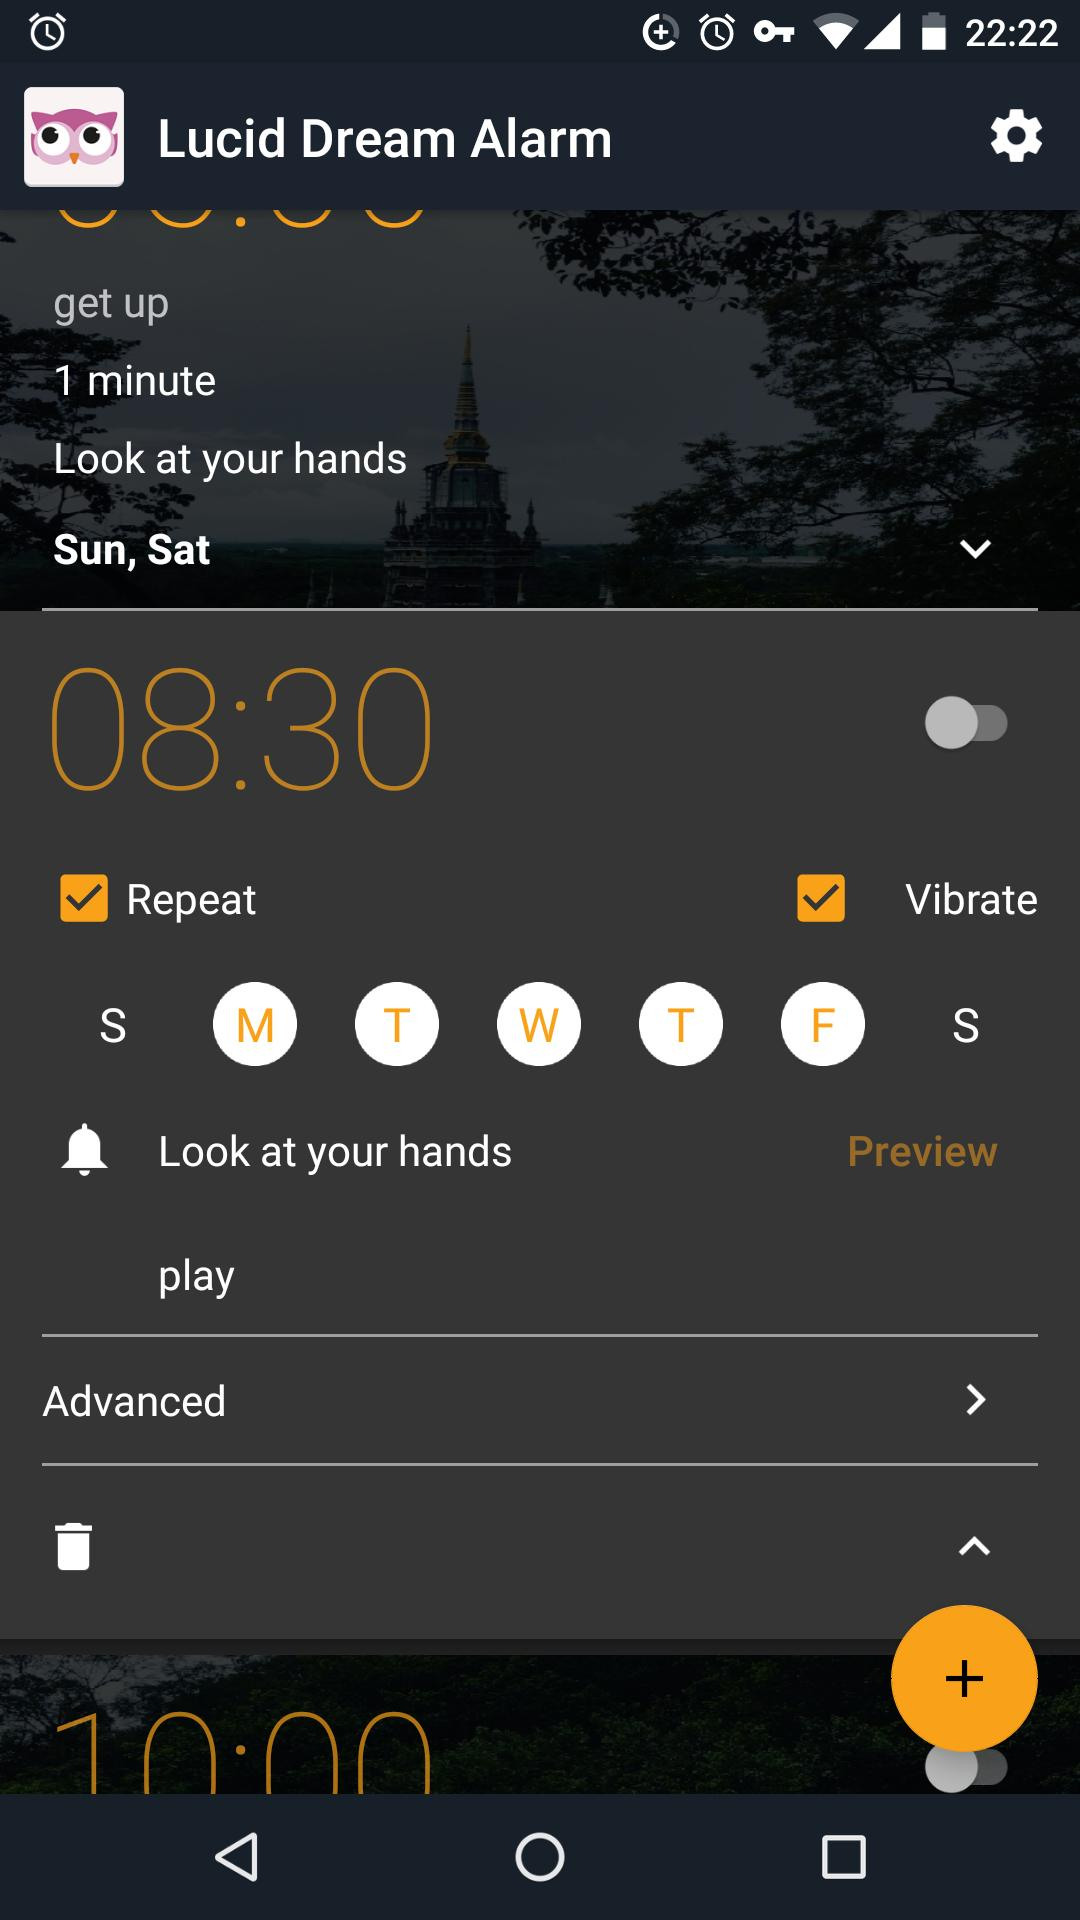 Lucid Dream Alarm for Android - APK Download